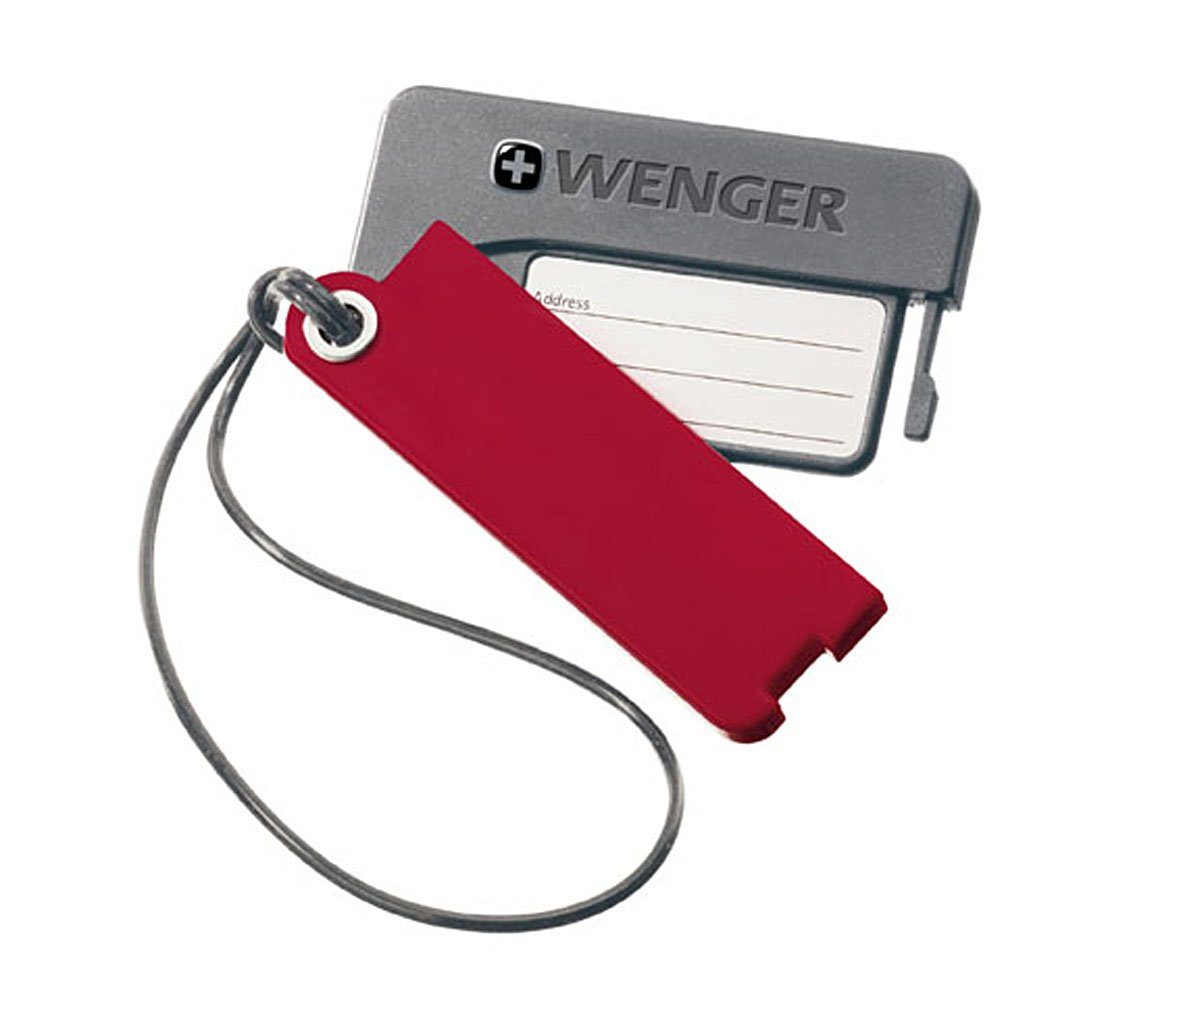 - WG6185RE Rot Rouge Wenger Etiquette